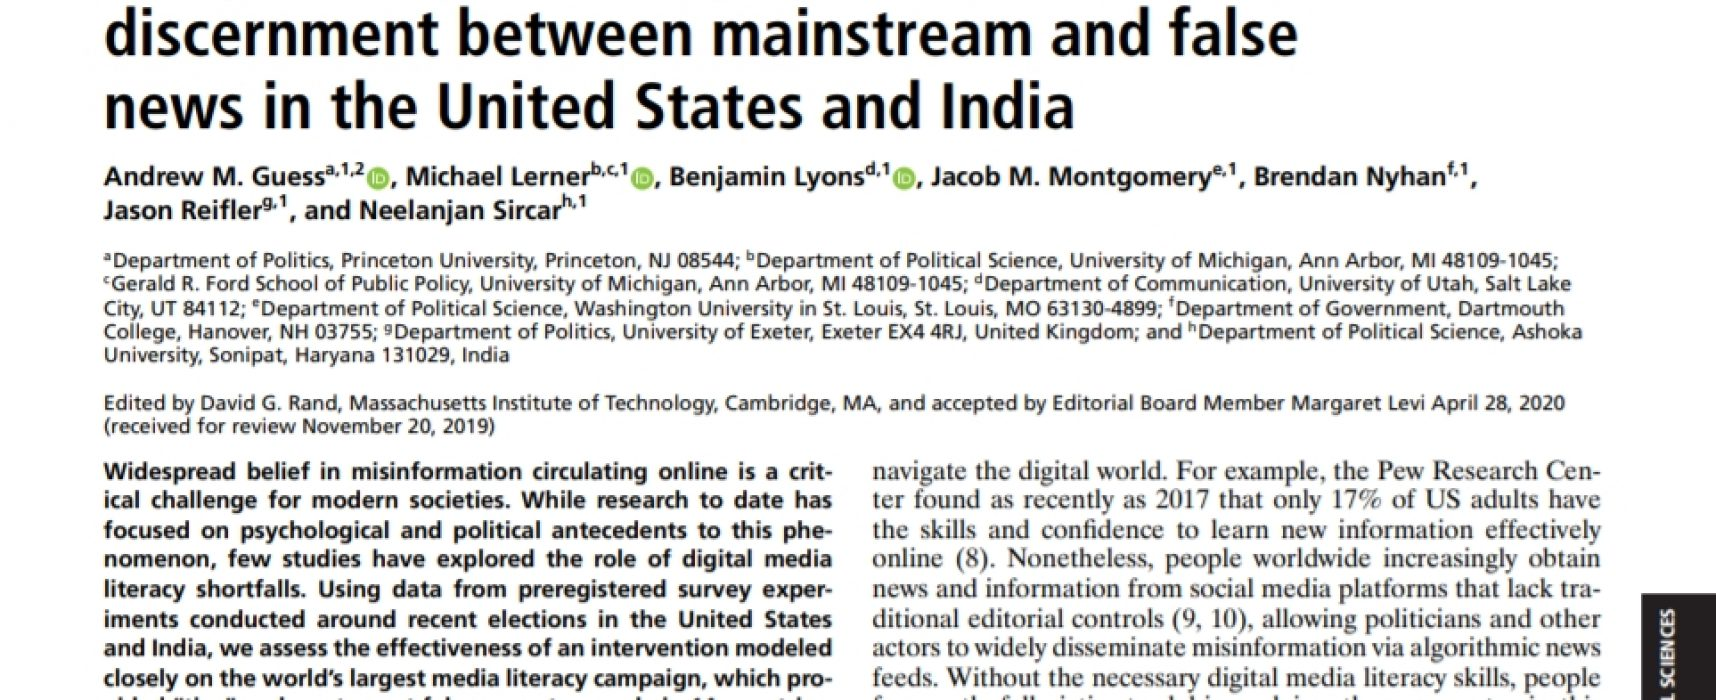 A digital media literacy intervention increases discernment between mainstream and false news in the United States and India